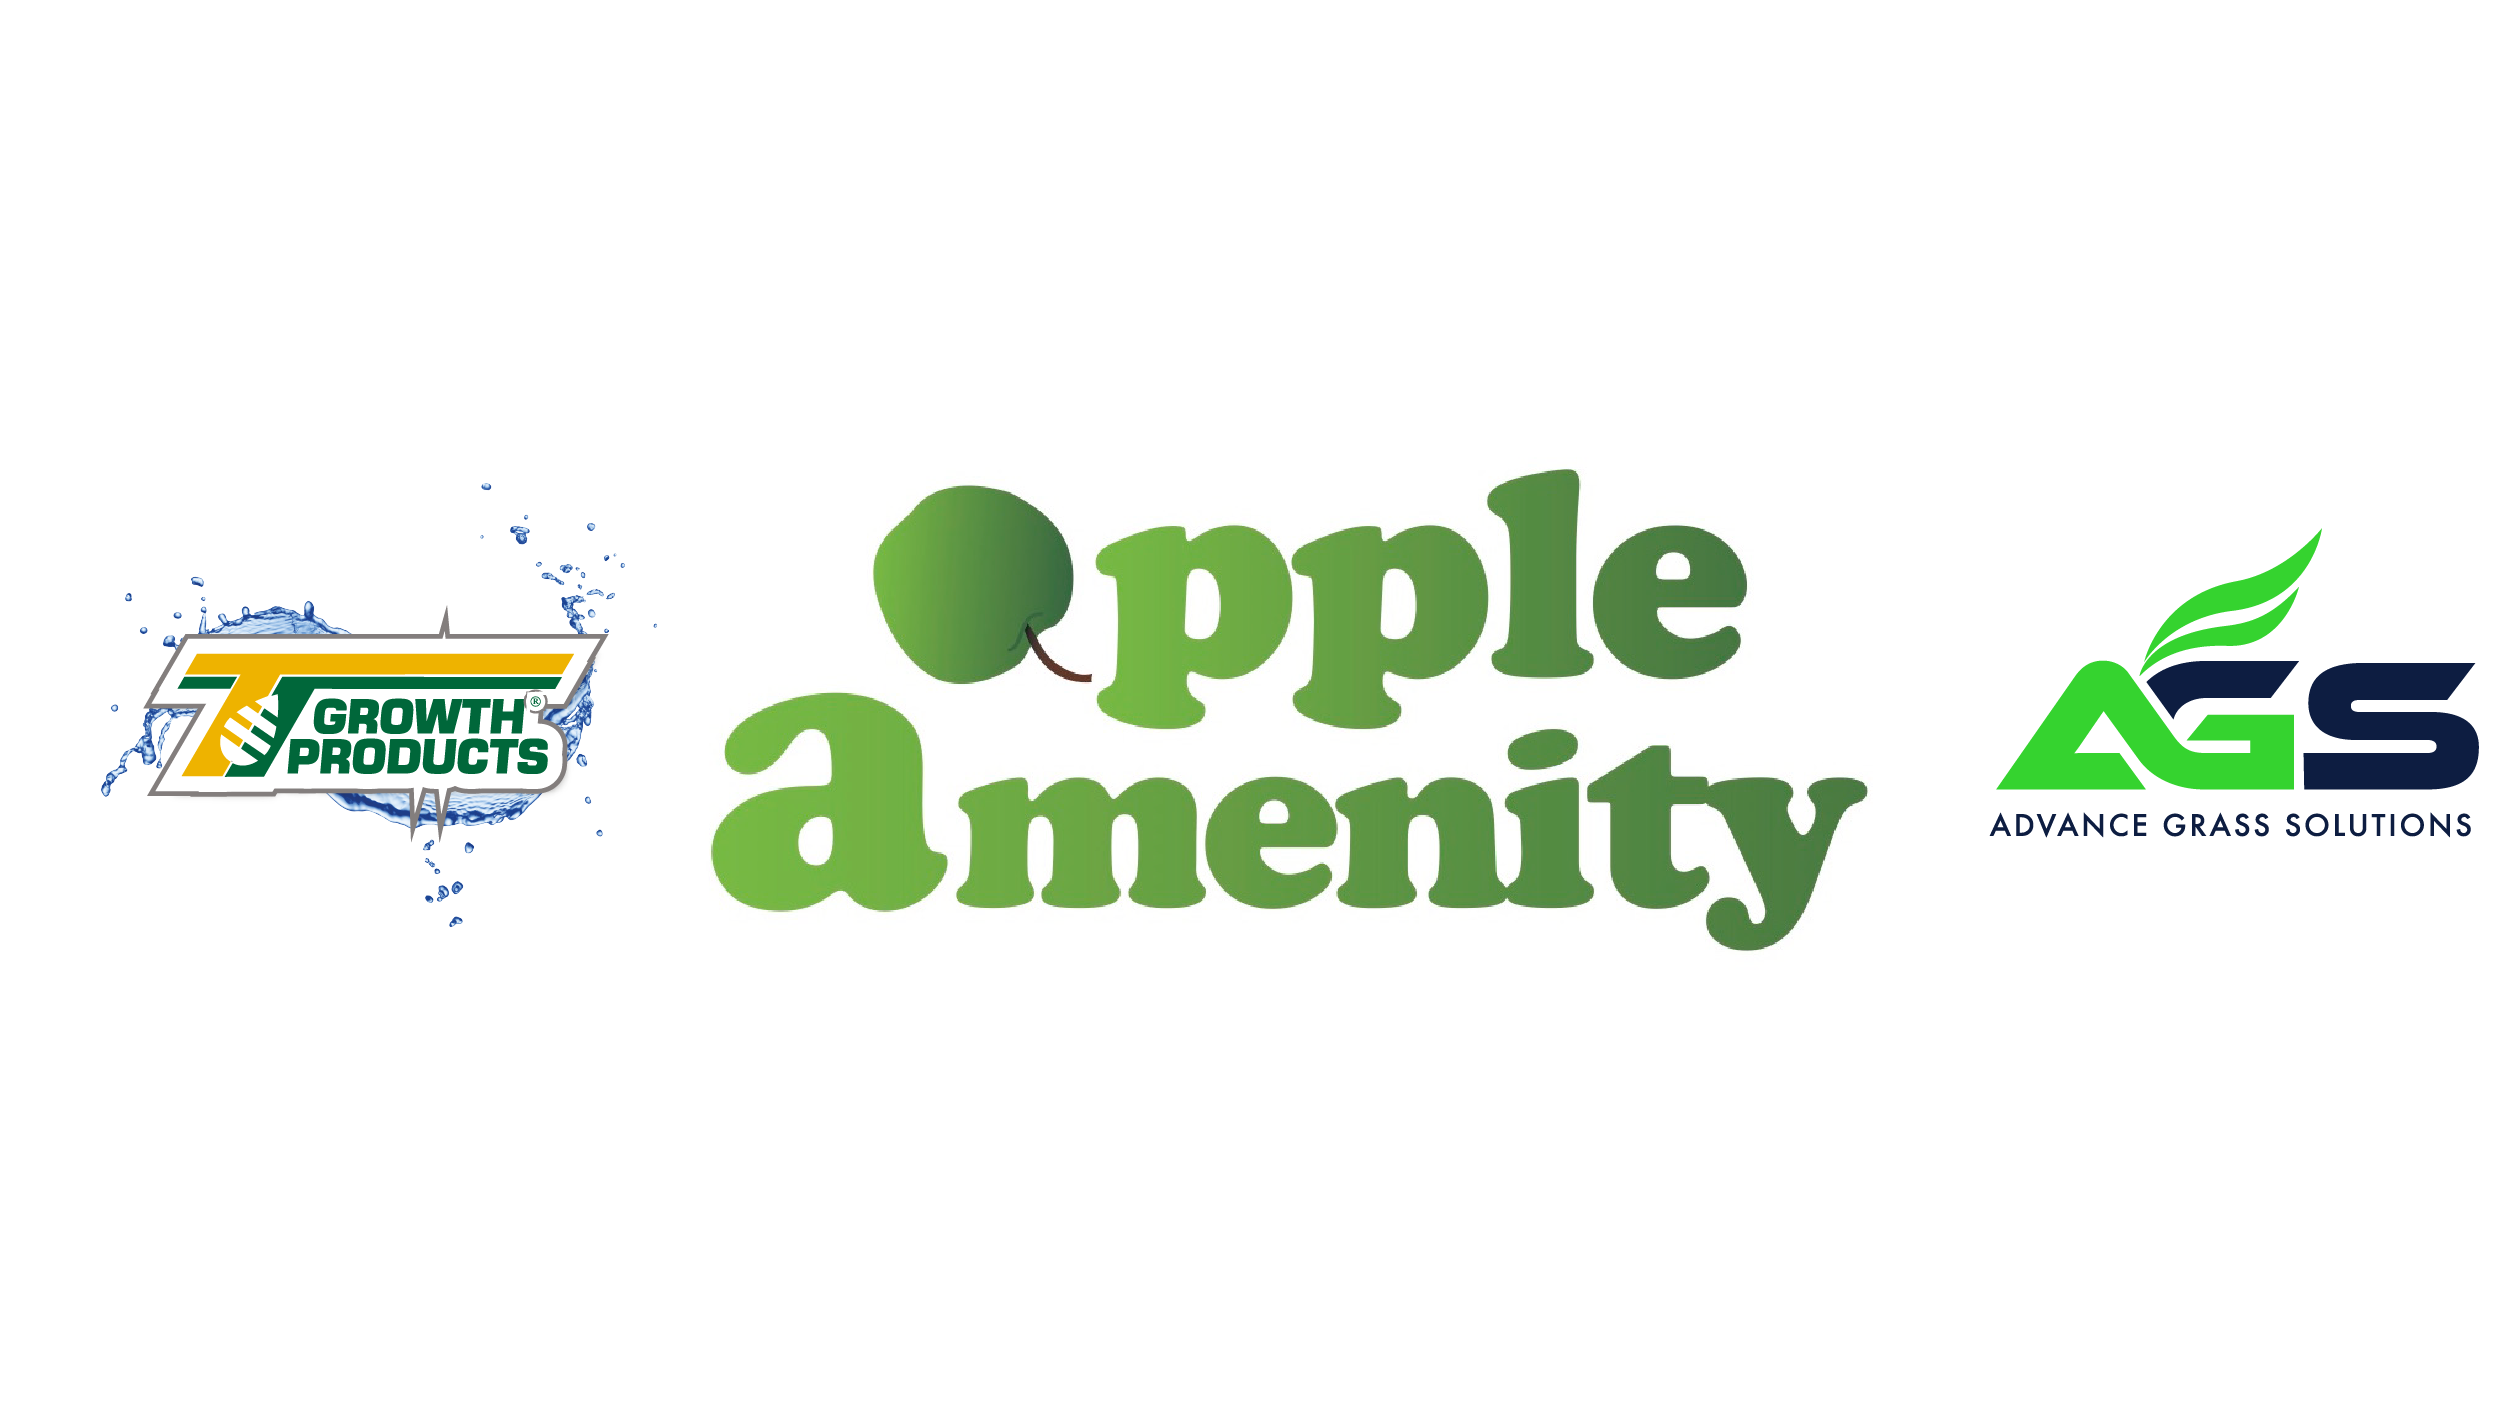 Apple Amenity